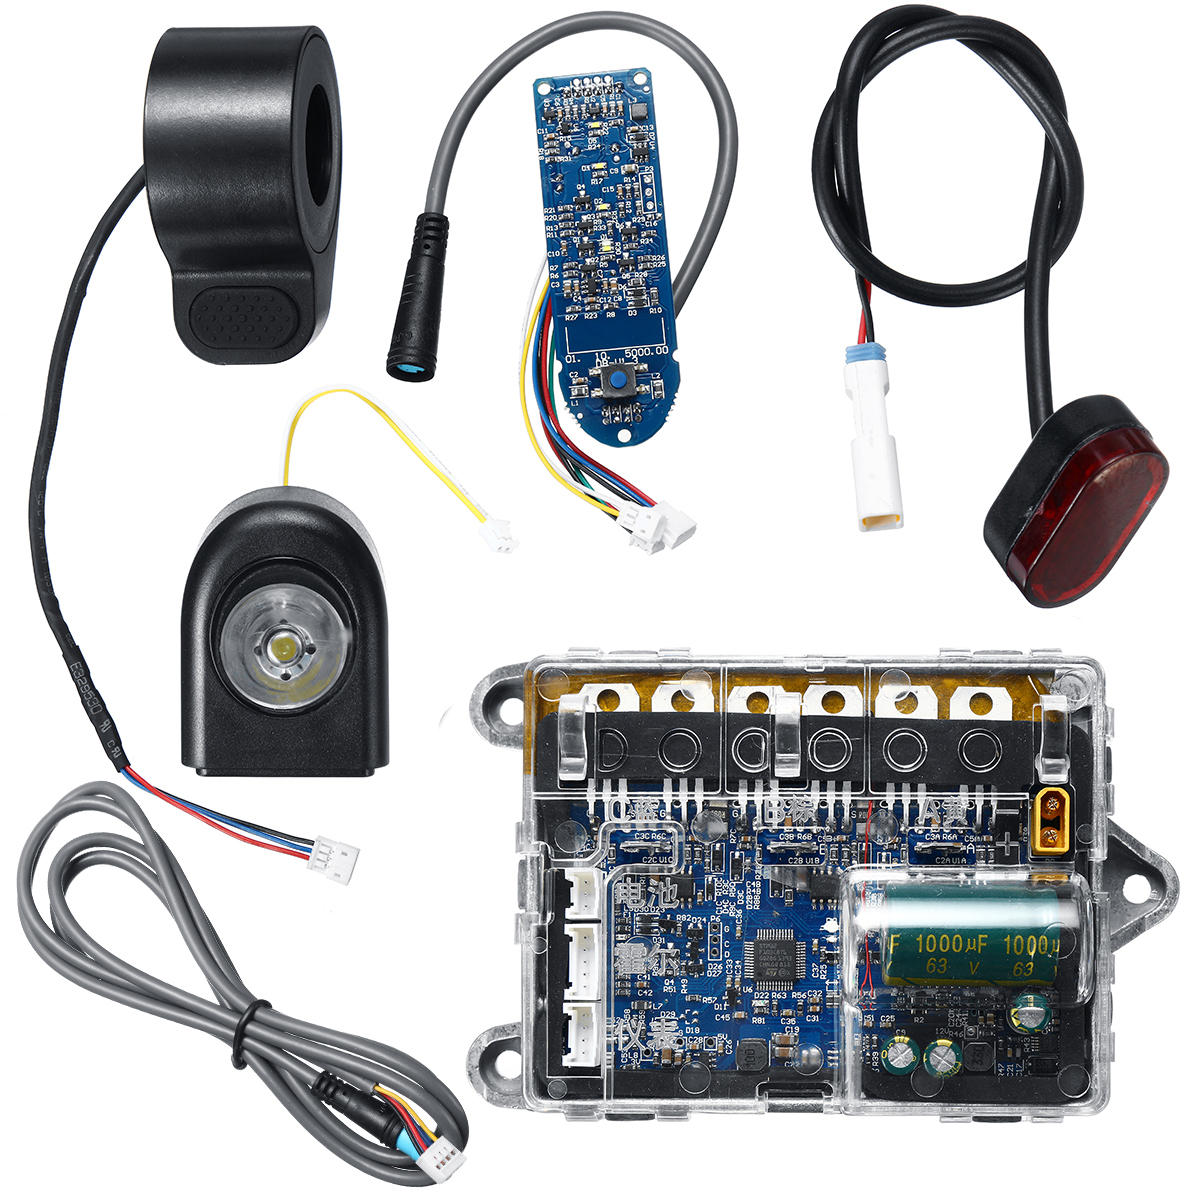 Circuit Motherboard+bluetooth Controller Set Scooter Skateboard For on scooter installation diagram, train diagram, scooter start wiring, scooter fuel gauge wiring, scooter clutch diagram, scooter starter diagram, scooter carburetor, scooter transmission diagram, scooter parts diagram, scooter controller schematic diagram, 50cc scooter diagram, scooter bmw, scooter won't start, electric scooter diagram, scooter repair manual, scooter engine, scooter electrical diagram, scooter horn diagram, scooter truck, scooter ignition wiring,